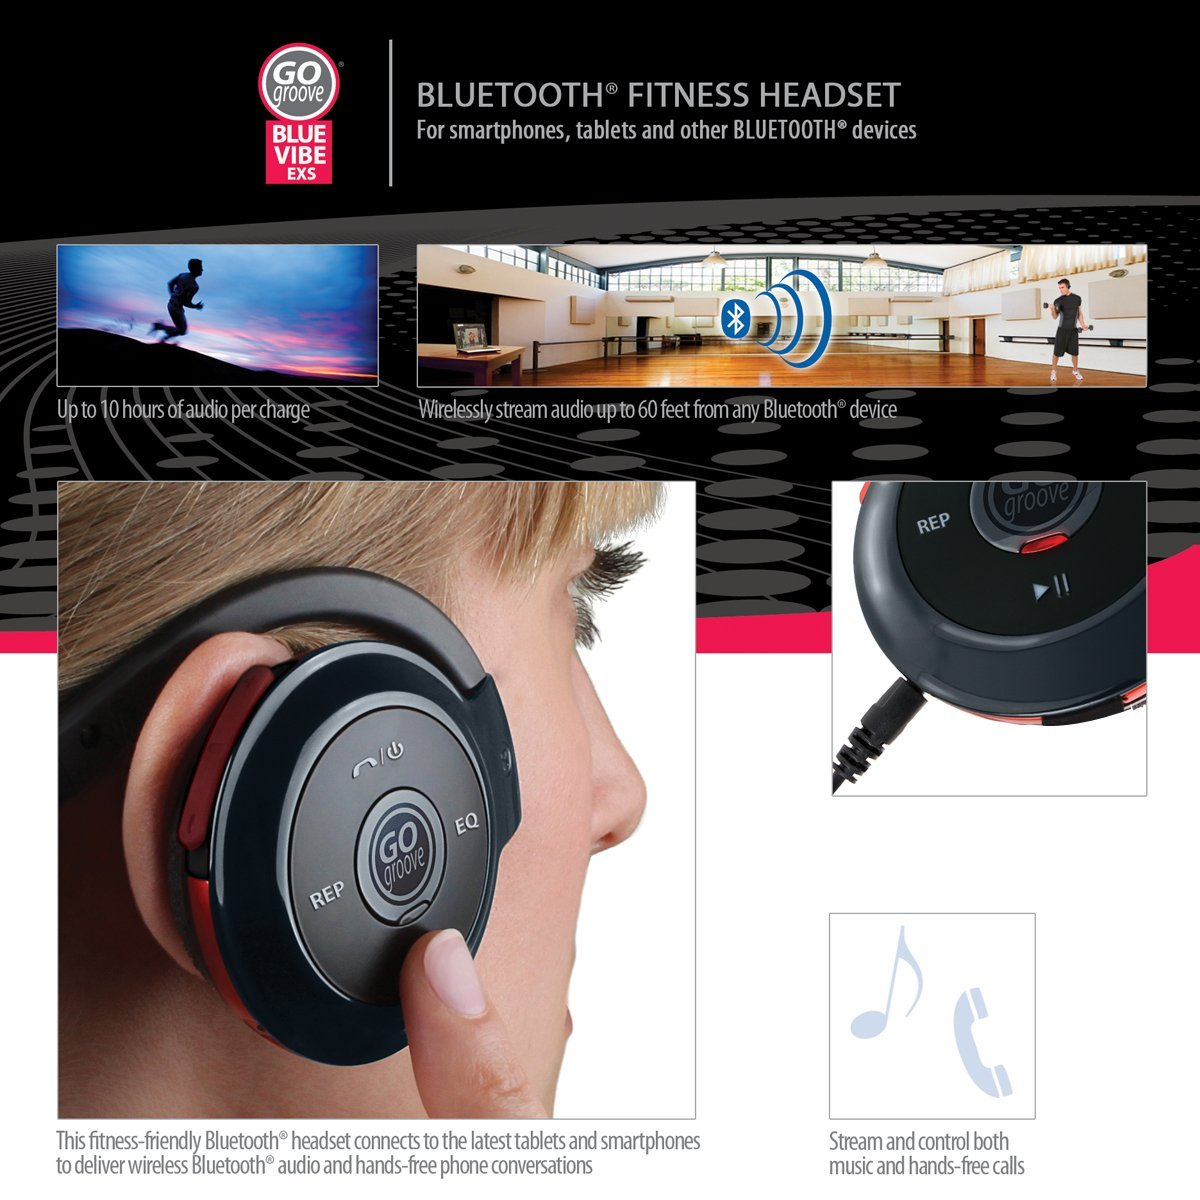 BlueVIBE EXS+ Wrap-Around Bluetooth Headphones - $19.99 (Today Only)